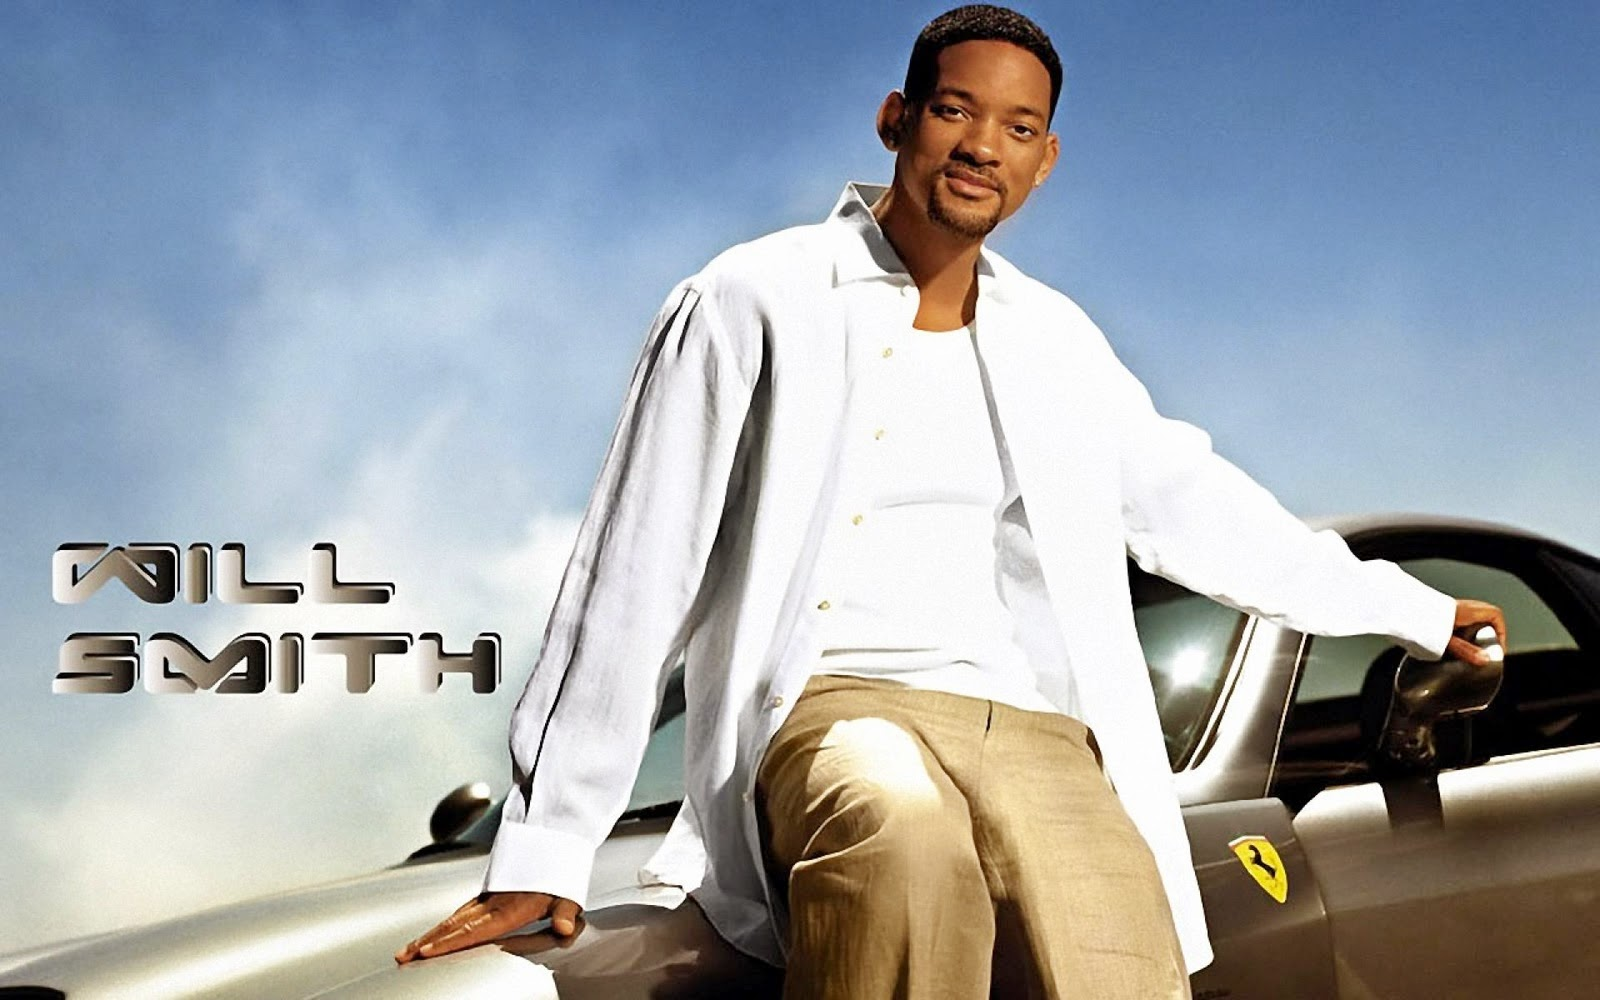 Will Smith HD Wallpapers | Download Free High Definition Desktop Backgrounds